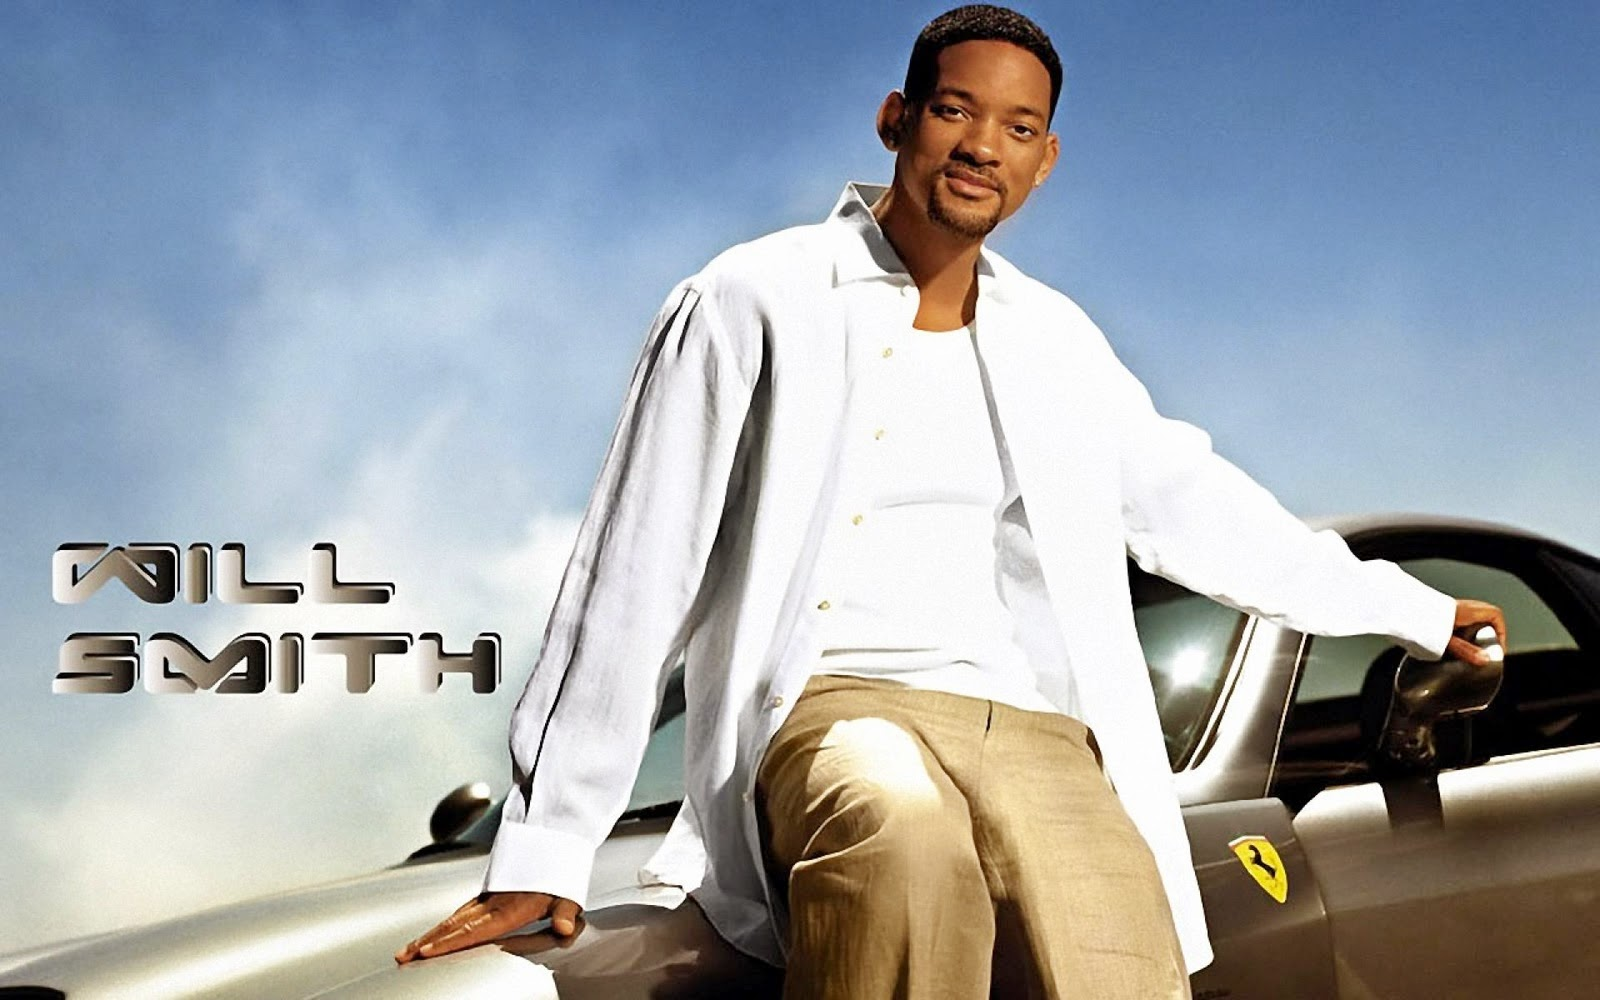 Will Smith HD Wallpapers | Download Free High Definition Desktop Backgrounds